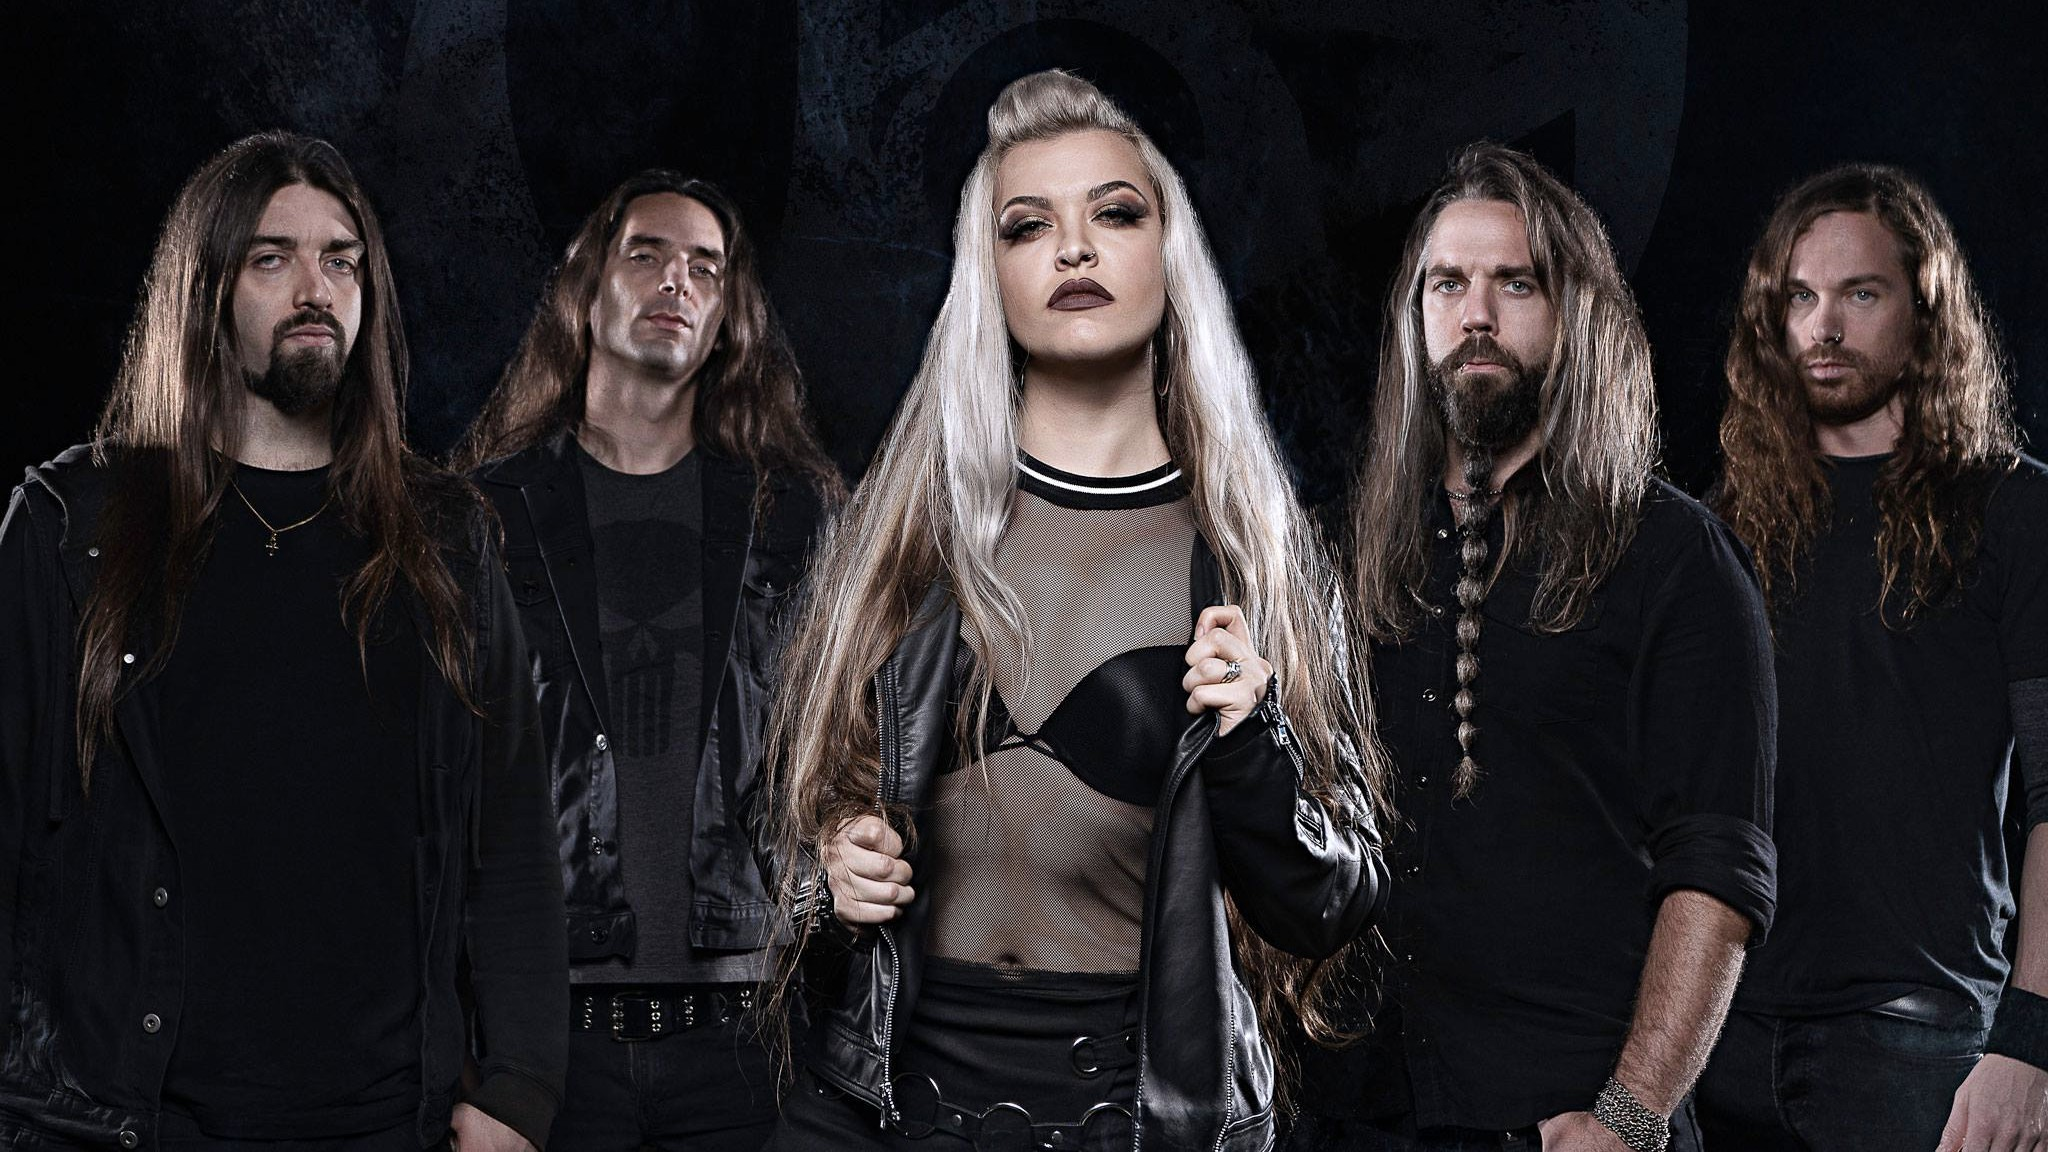 The Agonist Arch Enemy